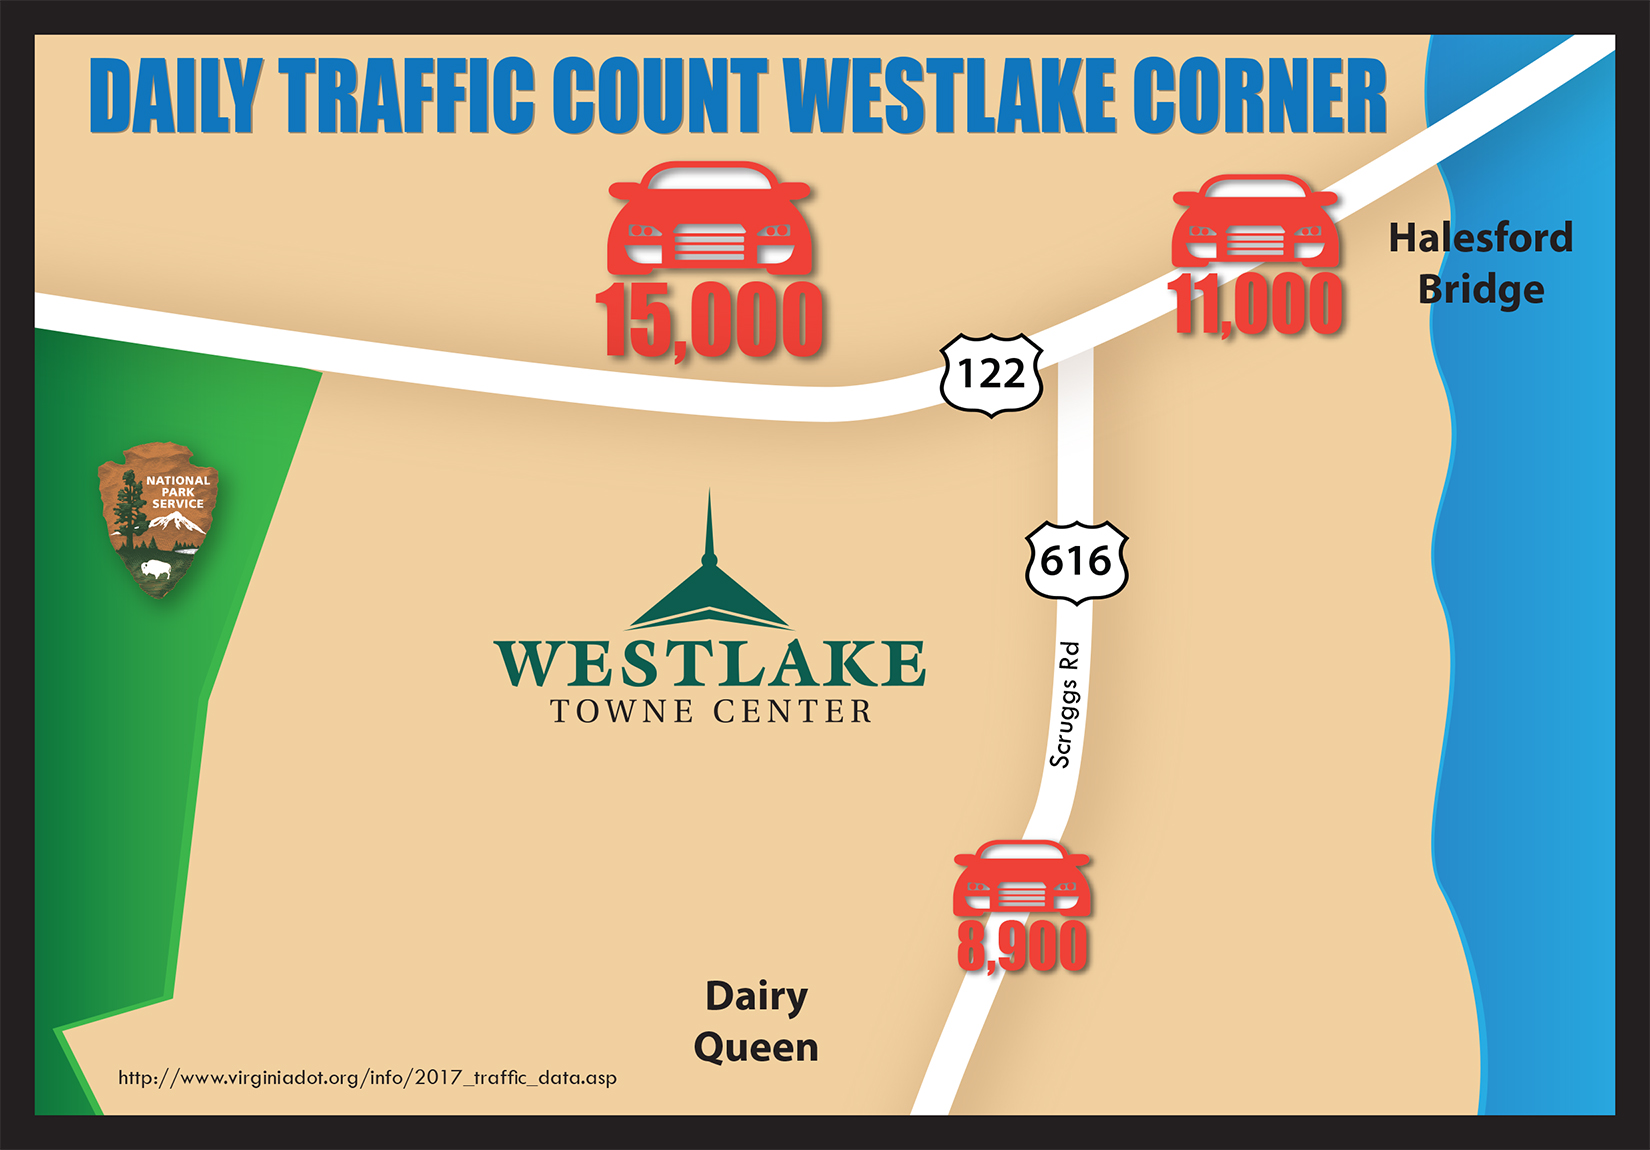 Westlake Towne Center traffic map